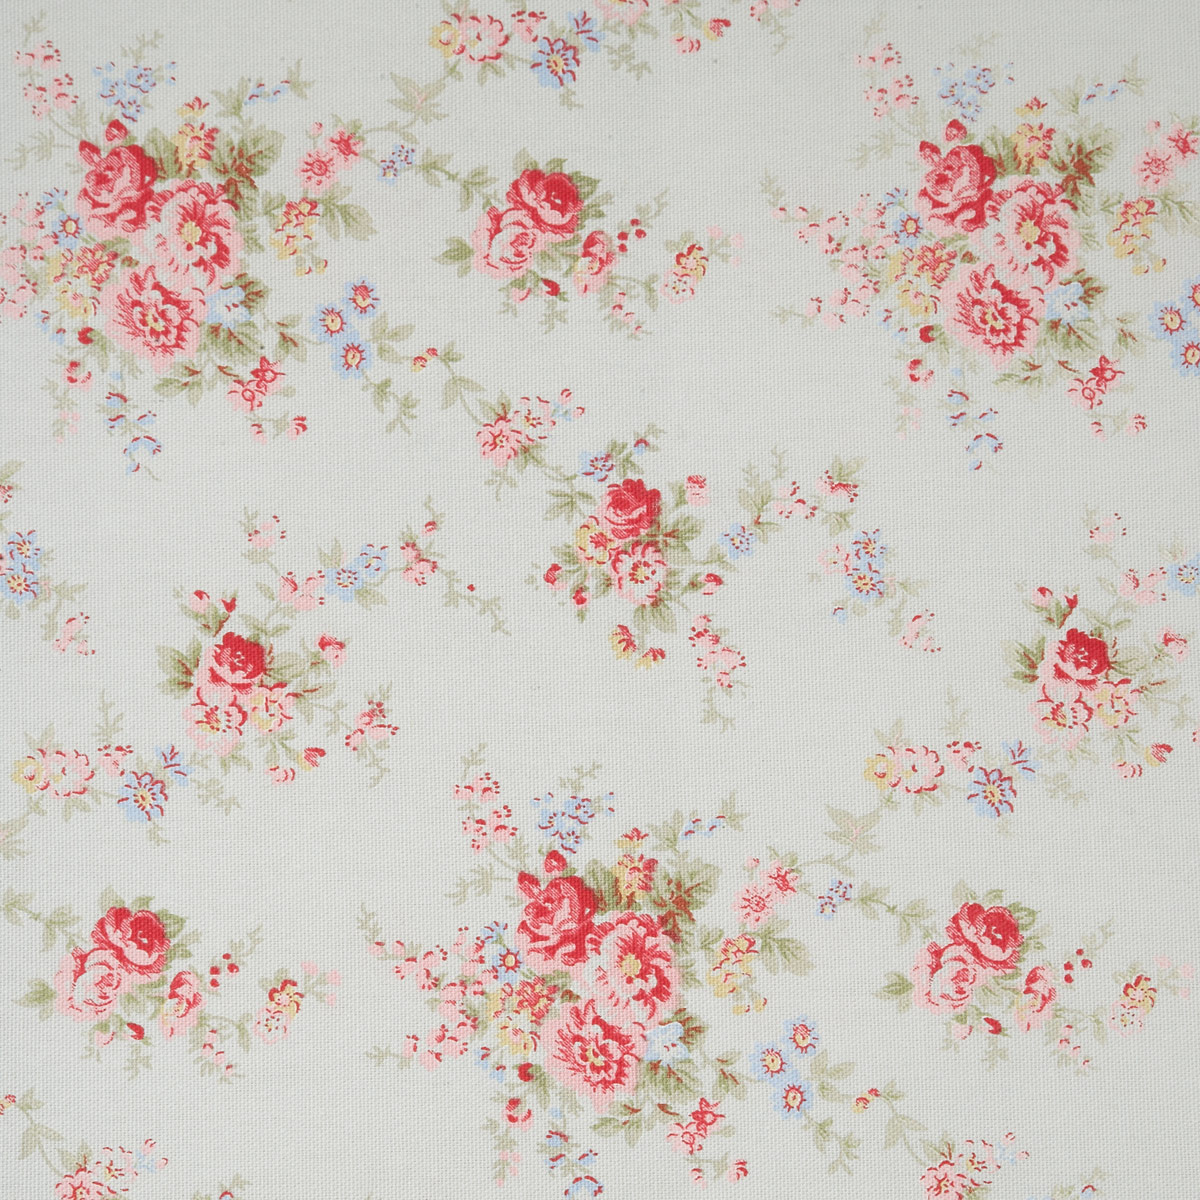 Washed Roses - Natural White - Detailed flower bouquet impressions on natural white fabric from Cath Kidston